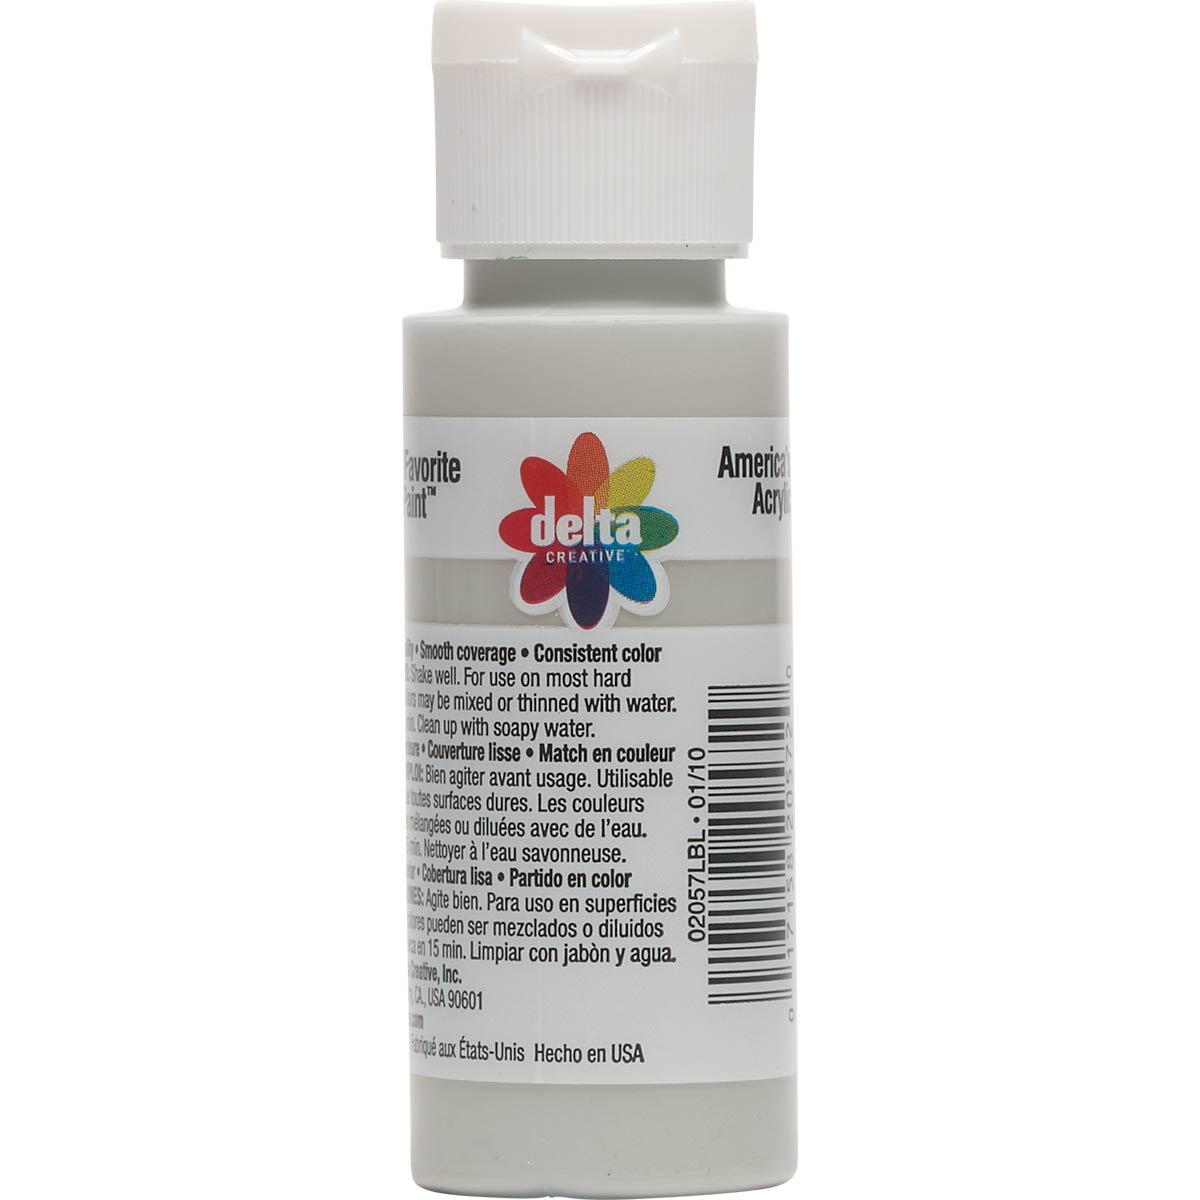 Delta Ceramcoat ® Acrylic Paint - Quaker Grey, 2 oz. - 020570202W